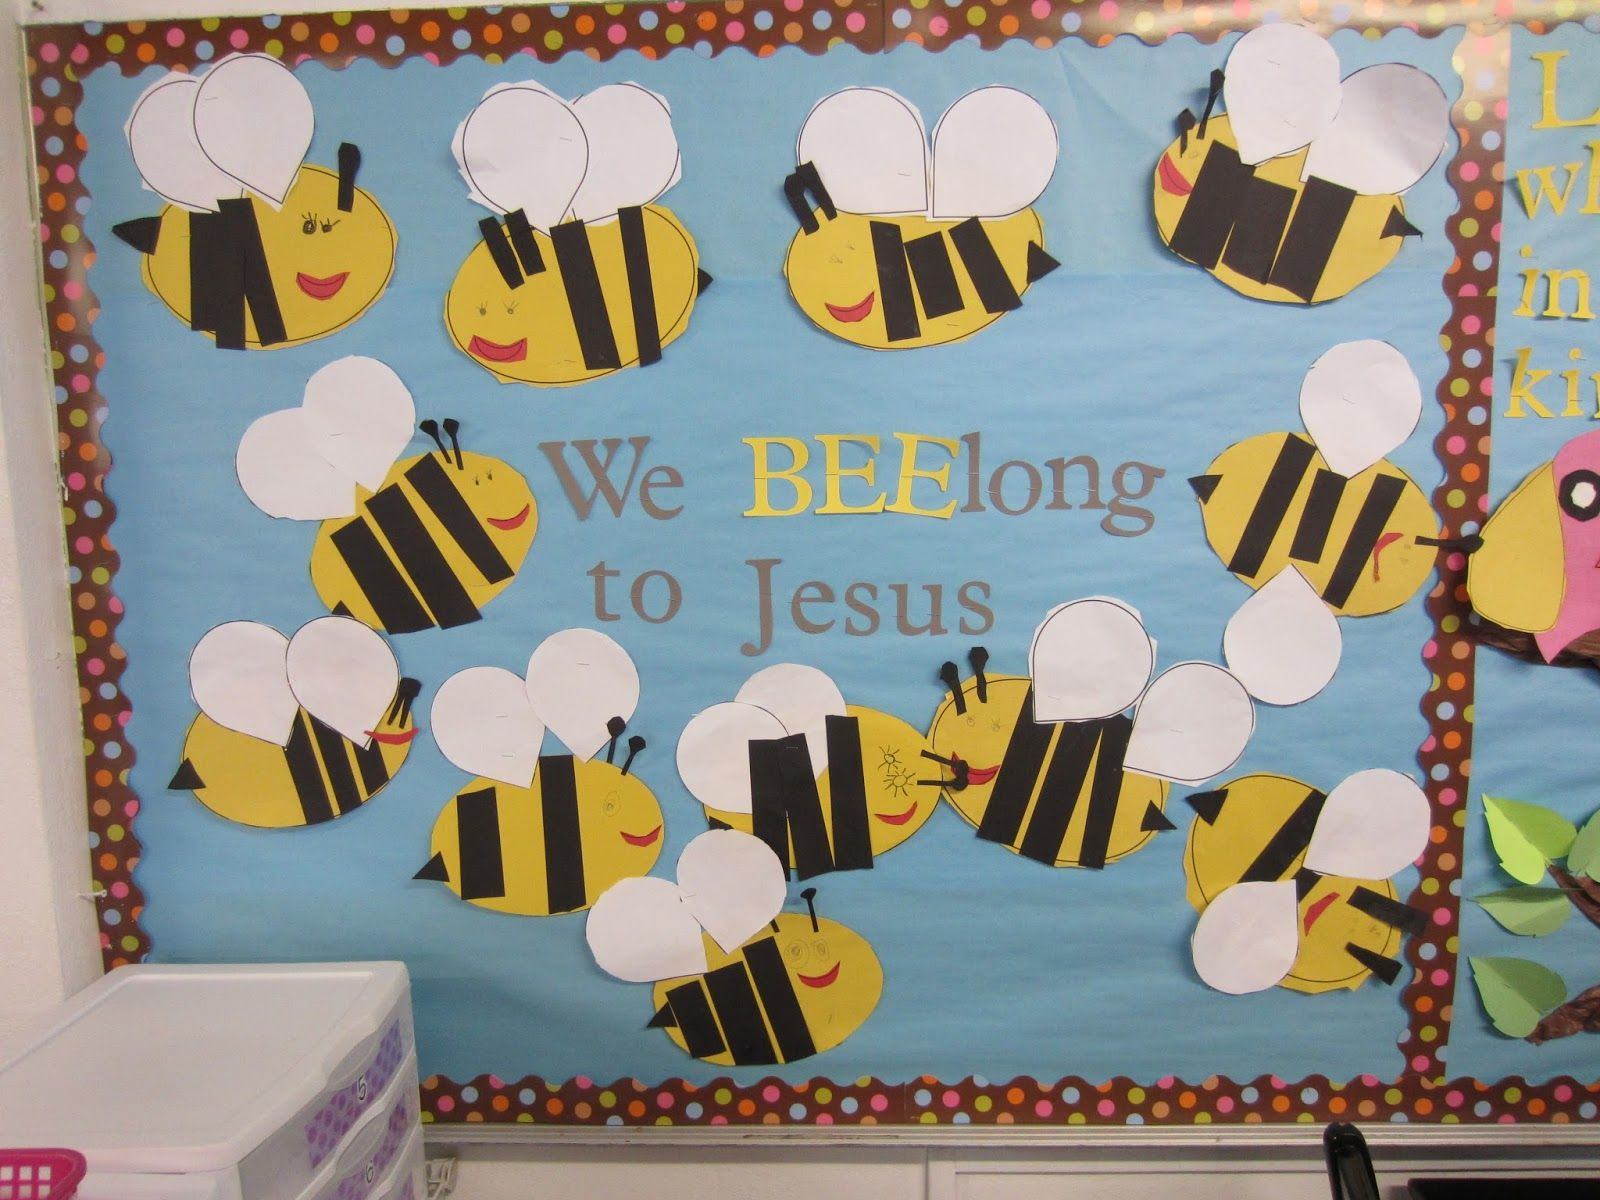 Christian easter bulletin board ideas - Catholic School Bulletin Boards If You Are At A Public School You Could Easily